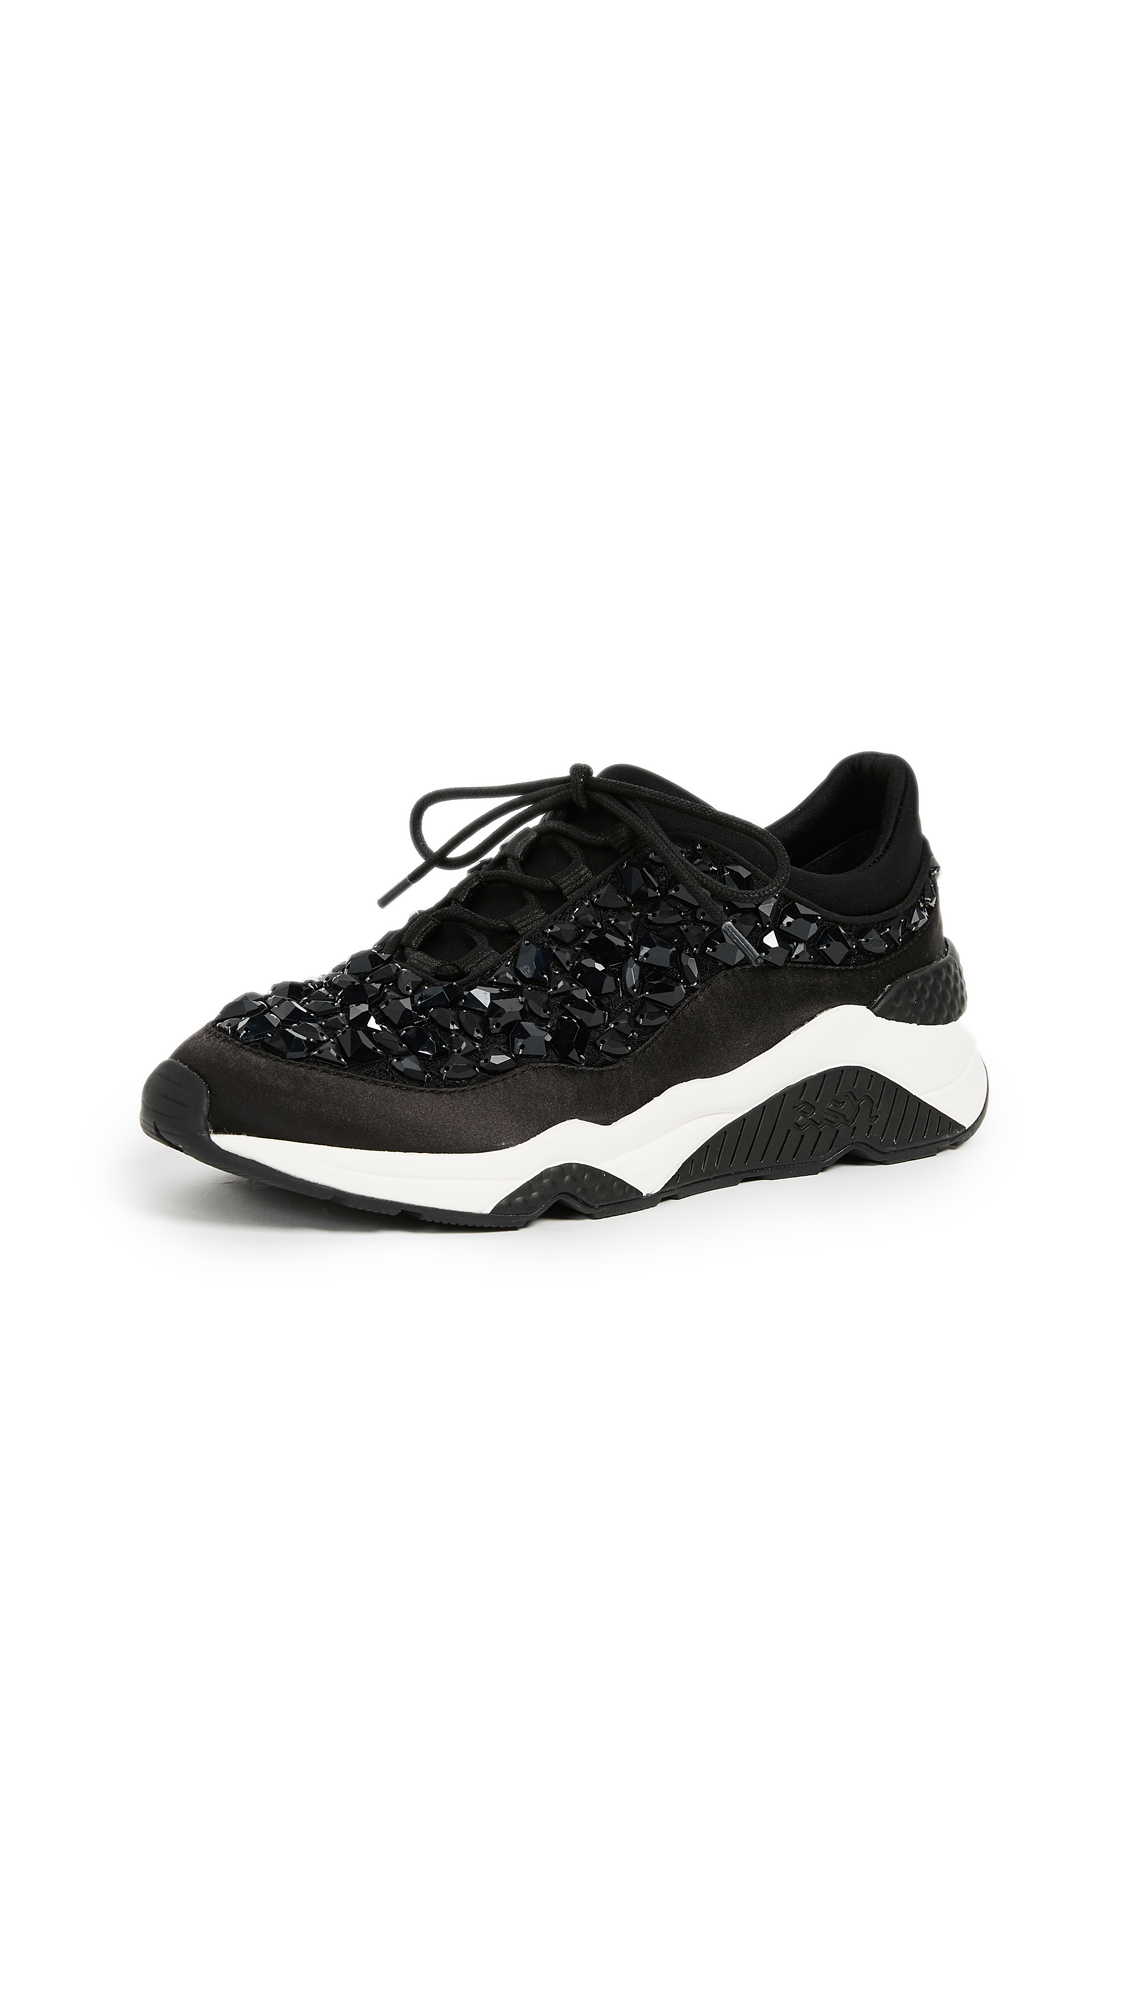 Ash Muse Stone Sneakers - Black